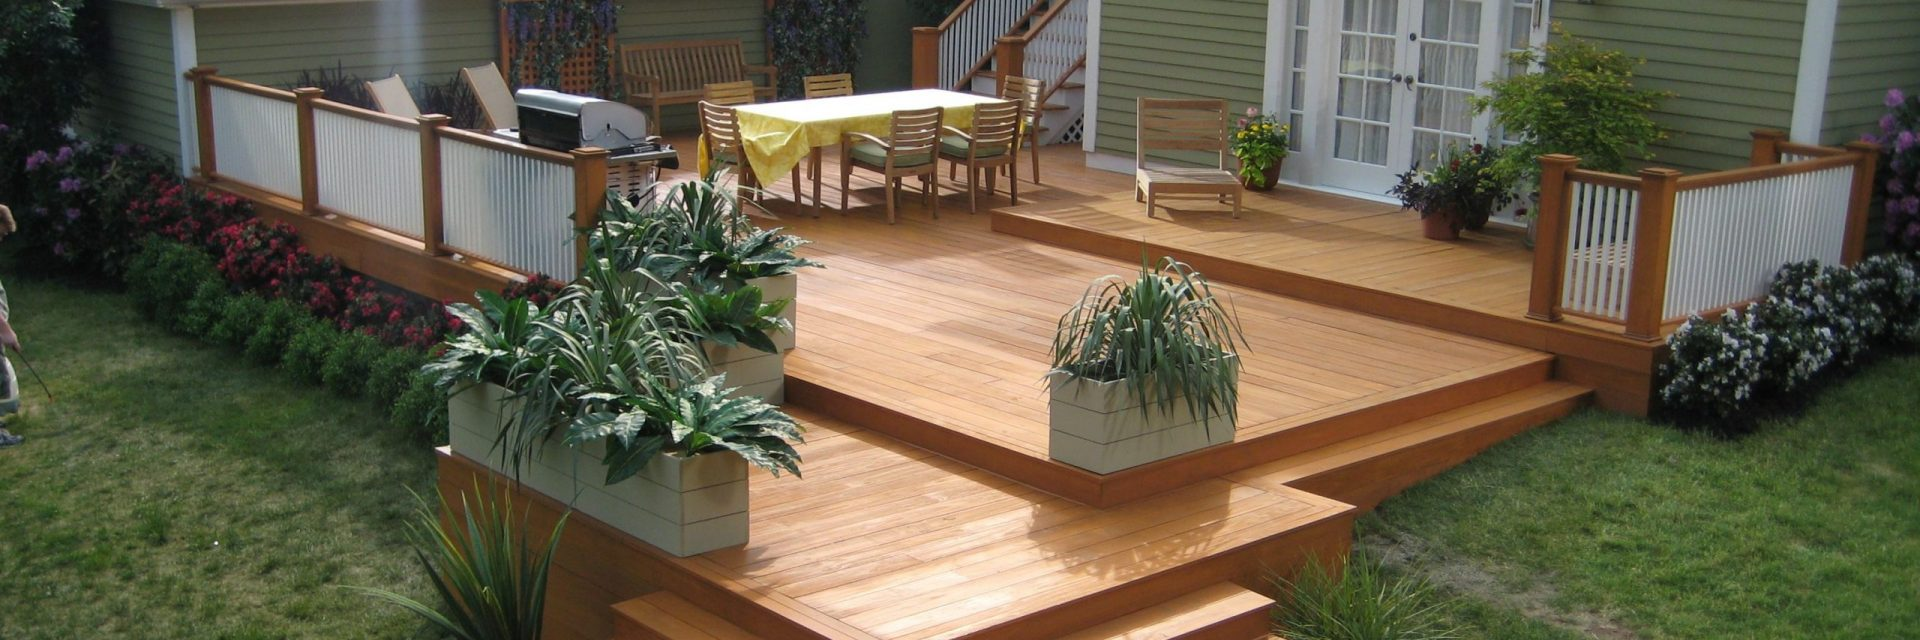 Mckinney Fence And Deck - McKinney Fence & Deck Company